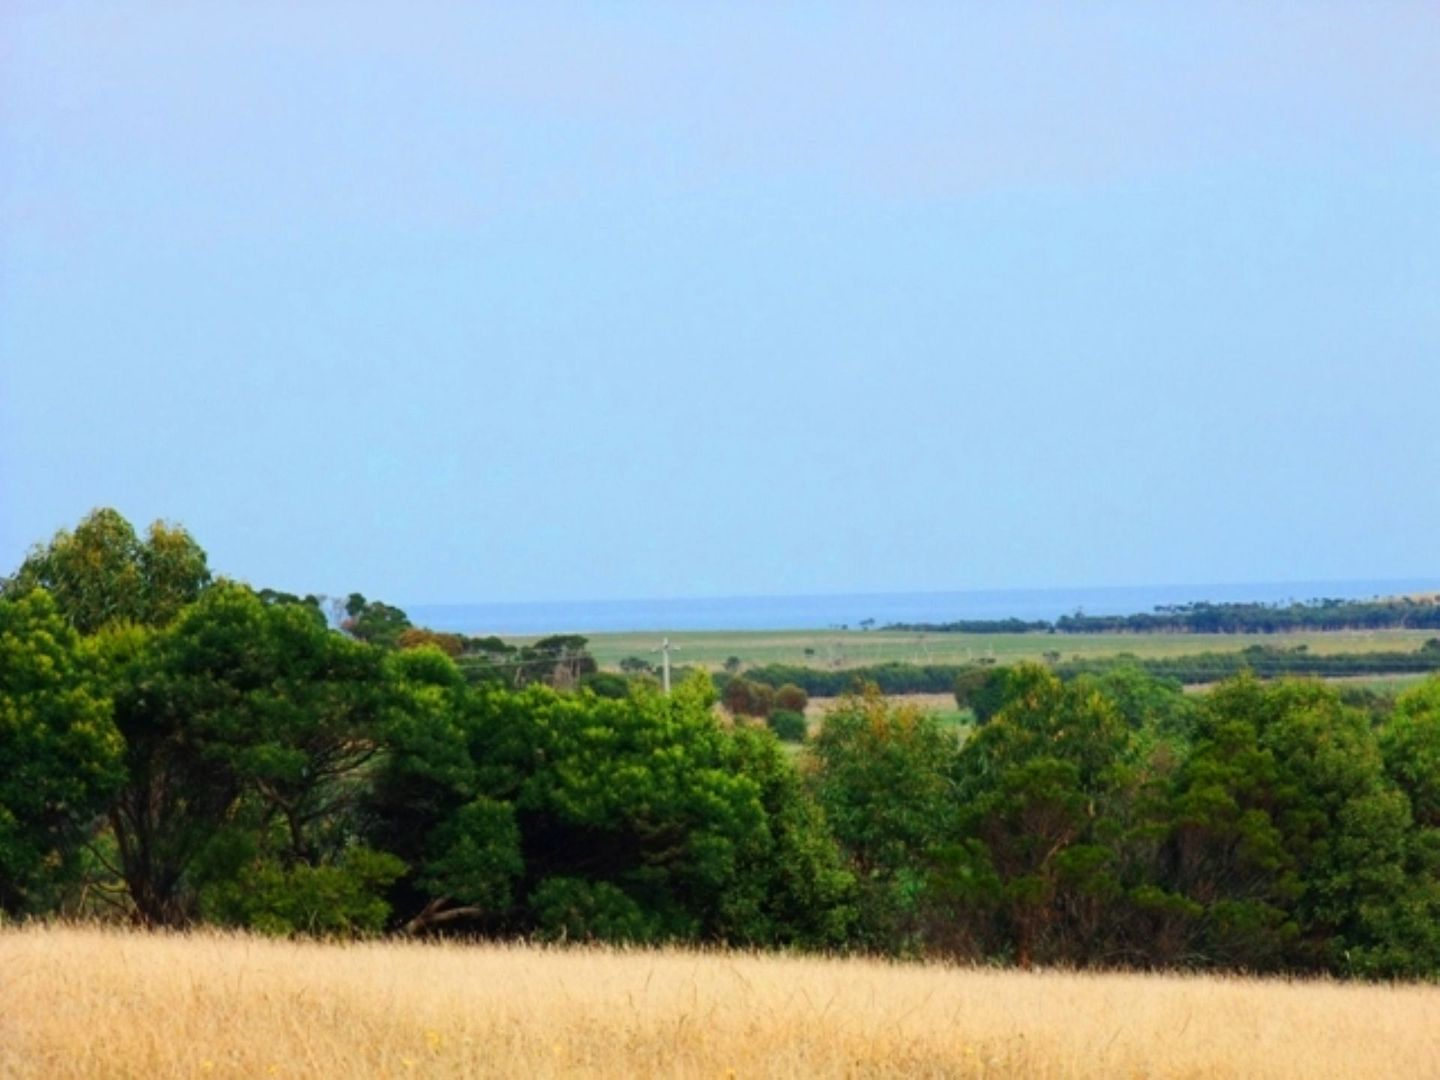 LOT 1 PYRAMID ROCK ROAD, Ventnor VIC 3922, Image 0